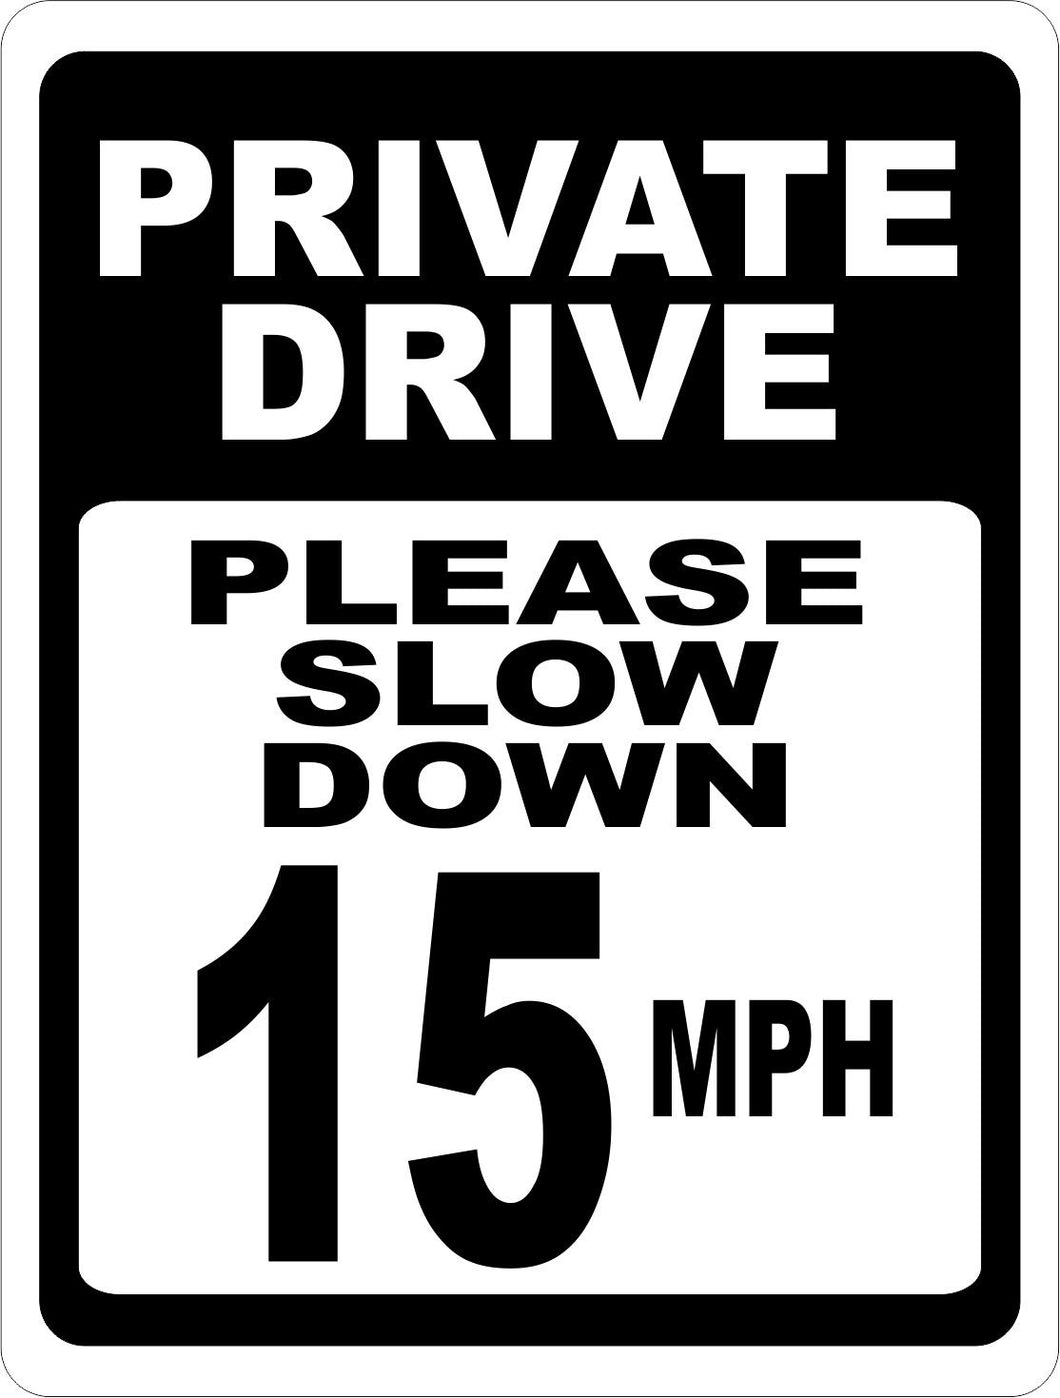 Private Drive Please Slow Down 15 MPH Sign - Signs & Decals by SalaGraphics